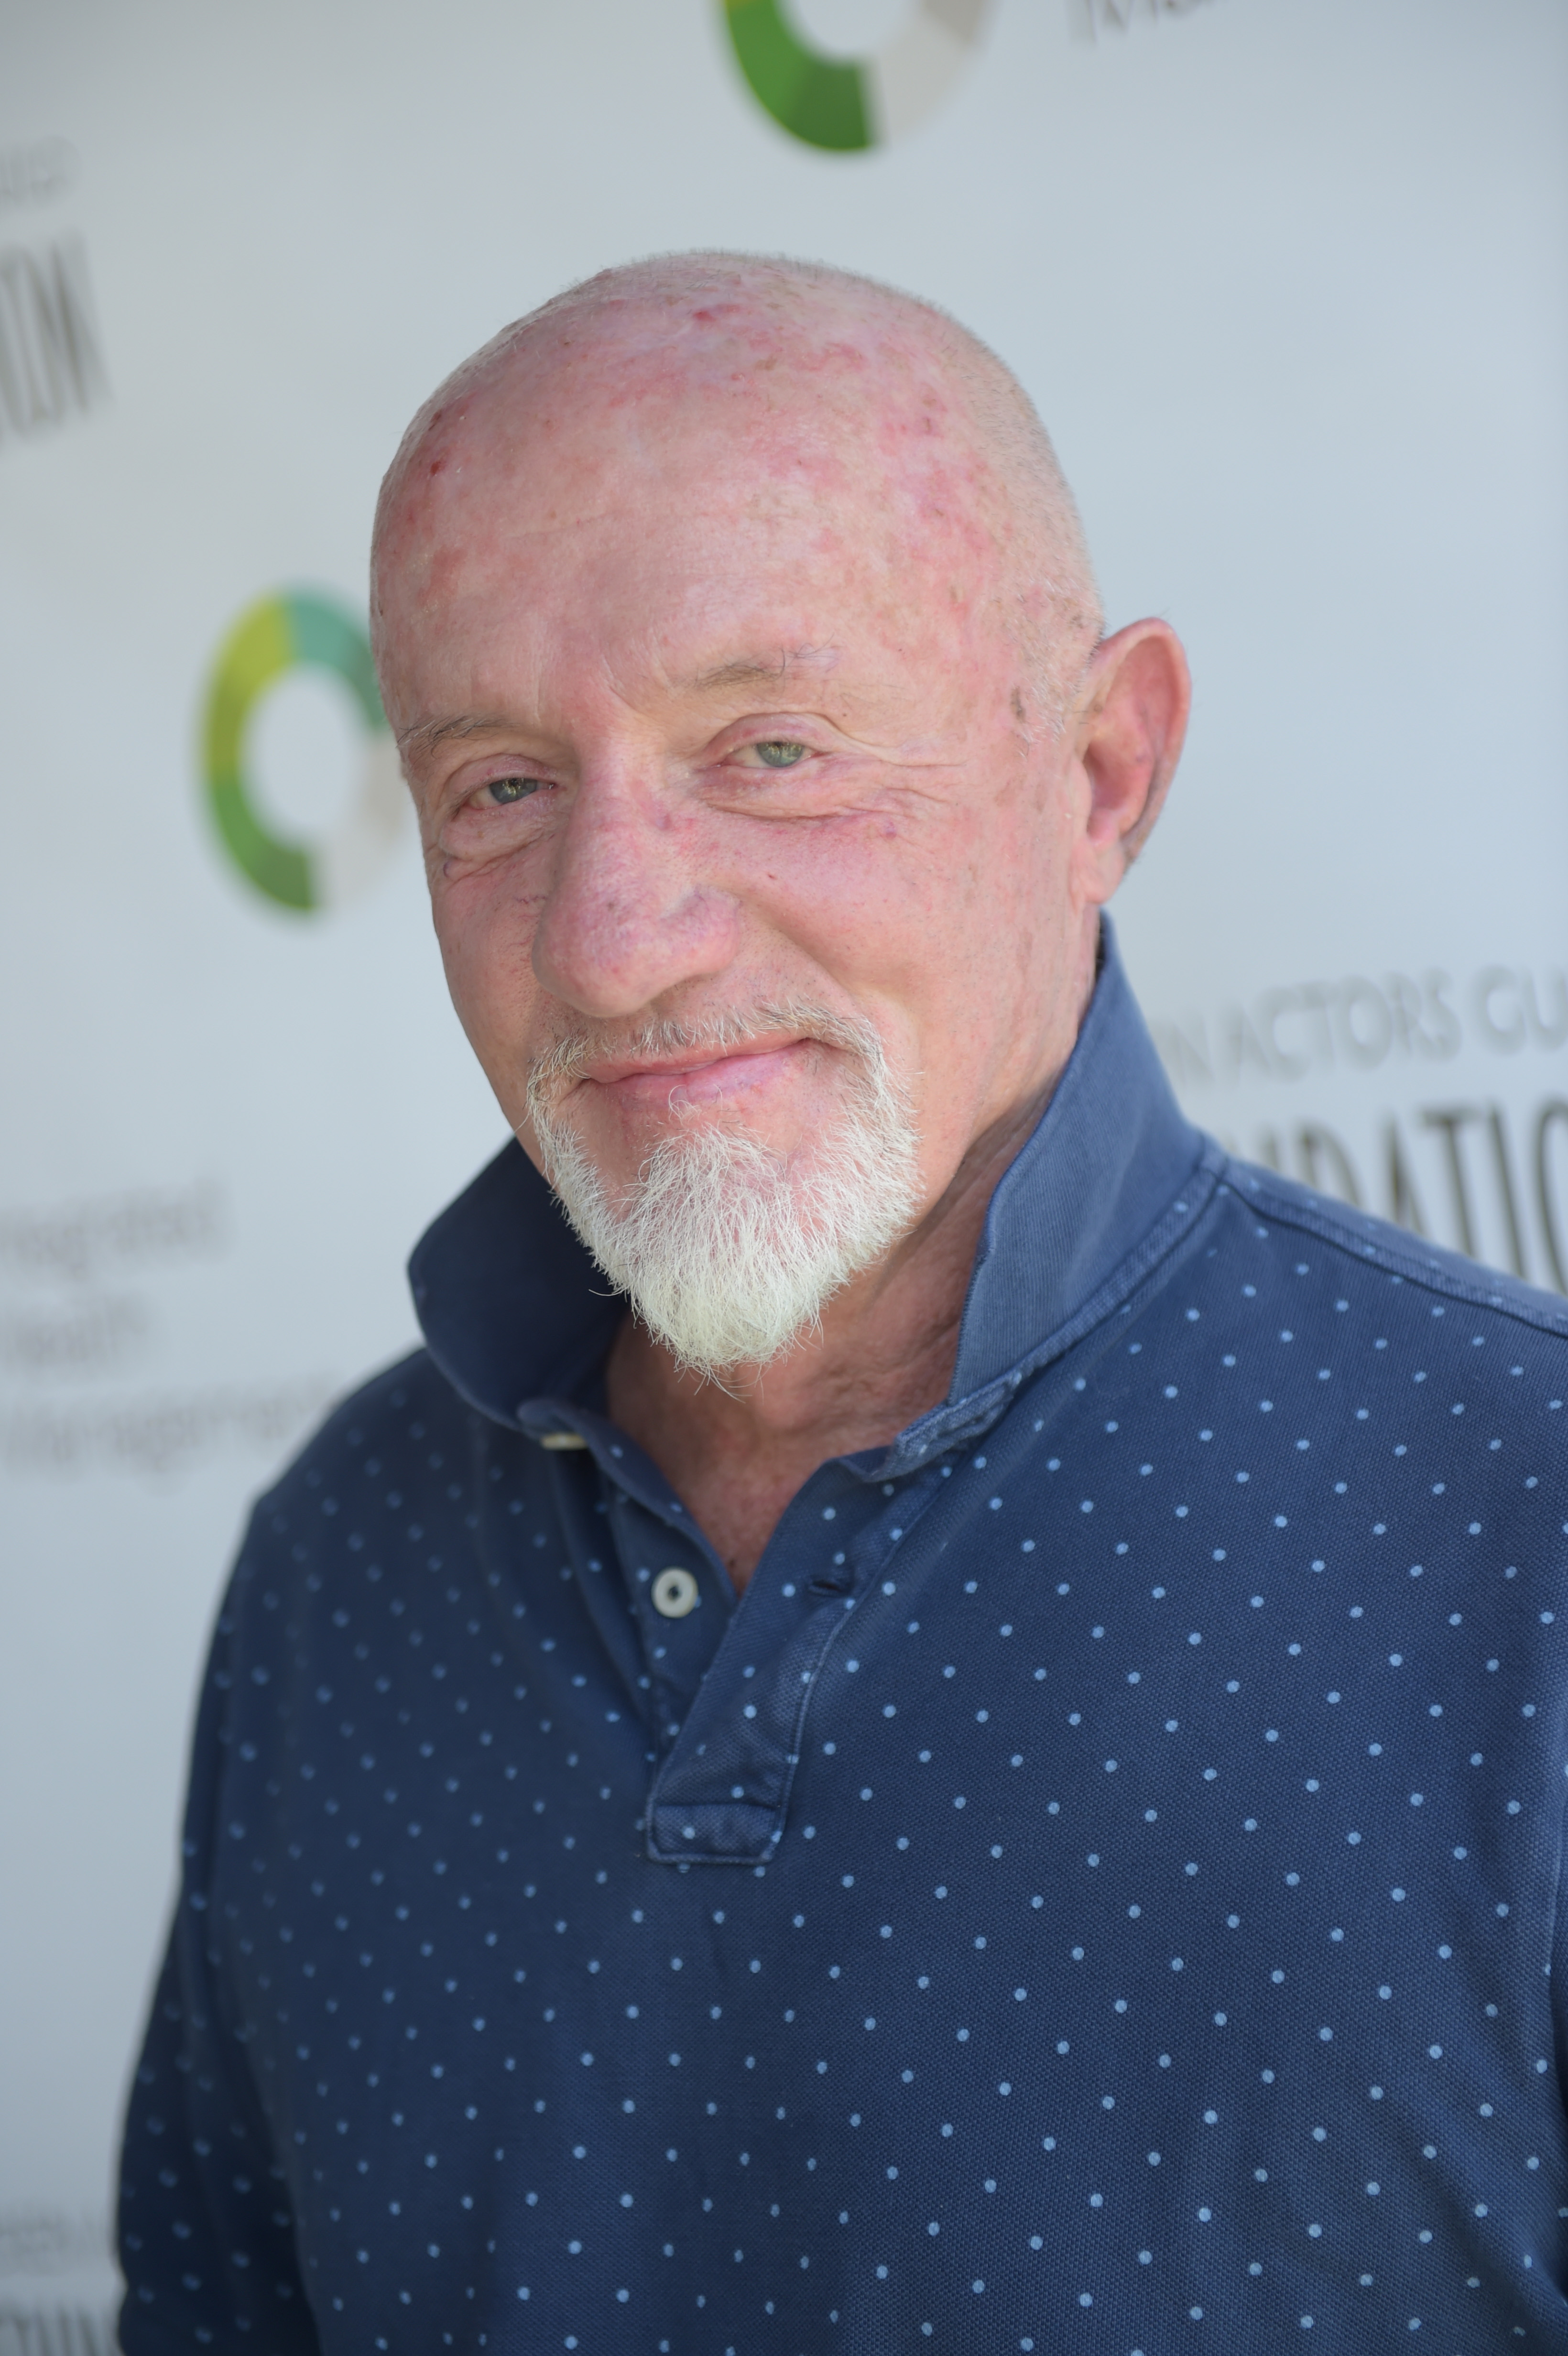 Actor Jonathan Banks attends the Screen Actors Guild Foundation's 6th Annual Los Angeles Golf Classic on June 8, 2015 in Burbank, California. (Photo by Jason Kempin/Getty Images for The Screen Actors Guild Foundation)